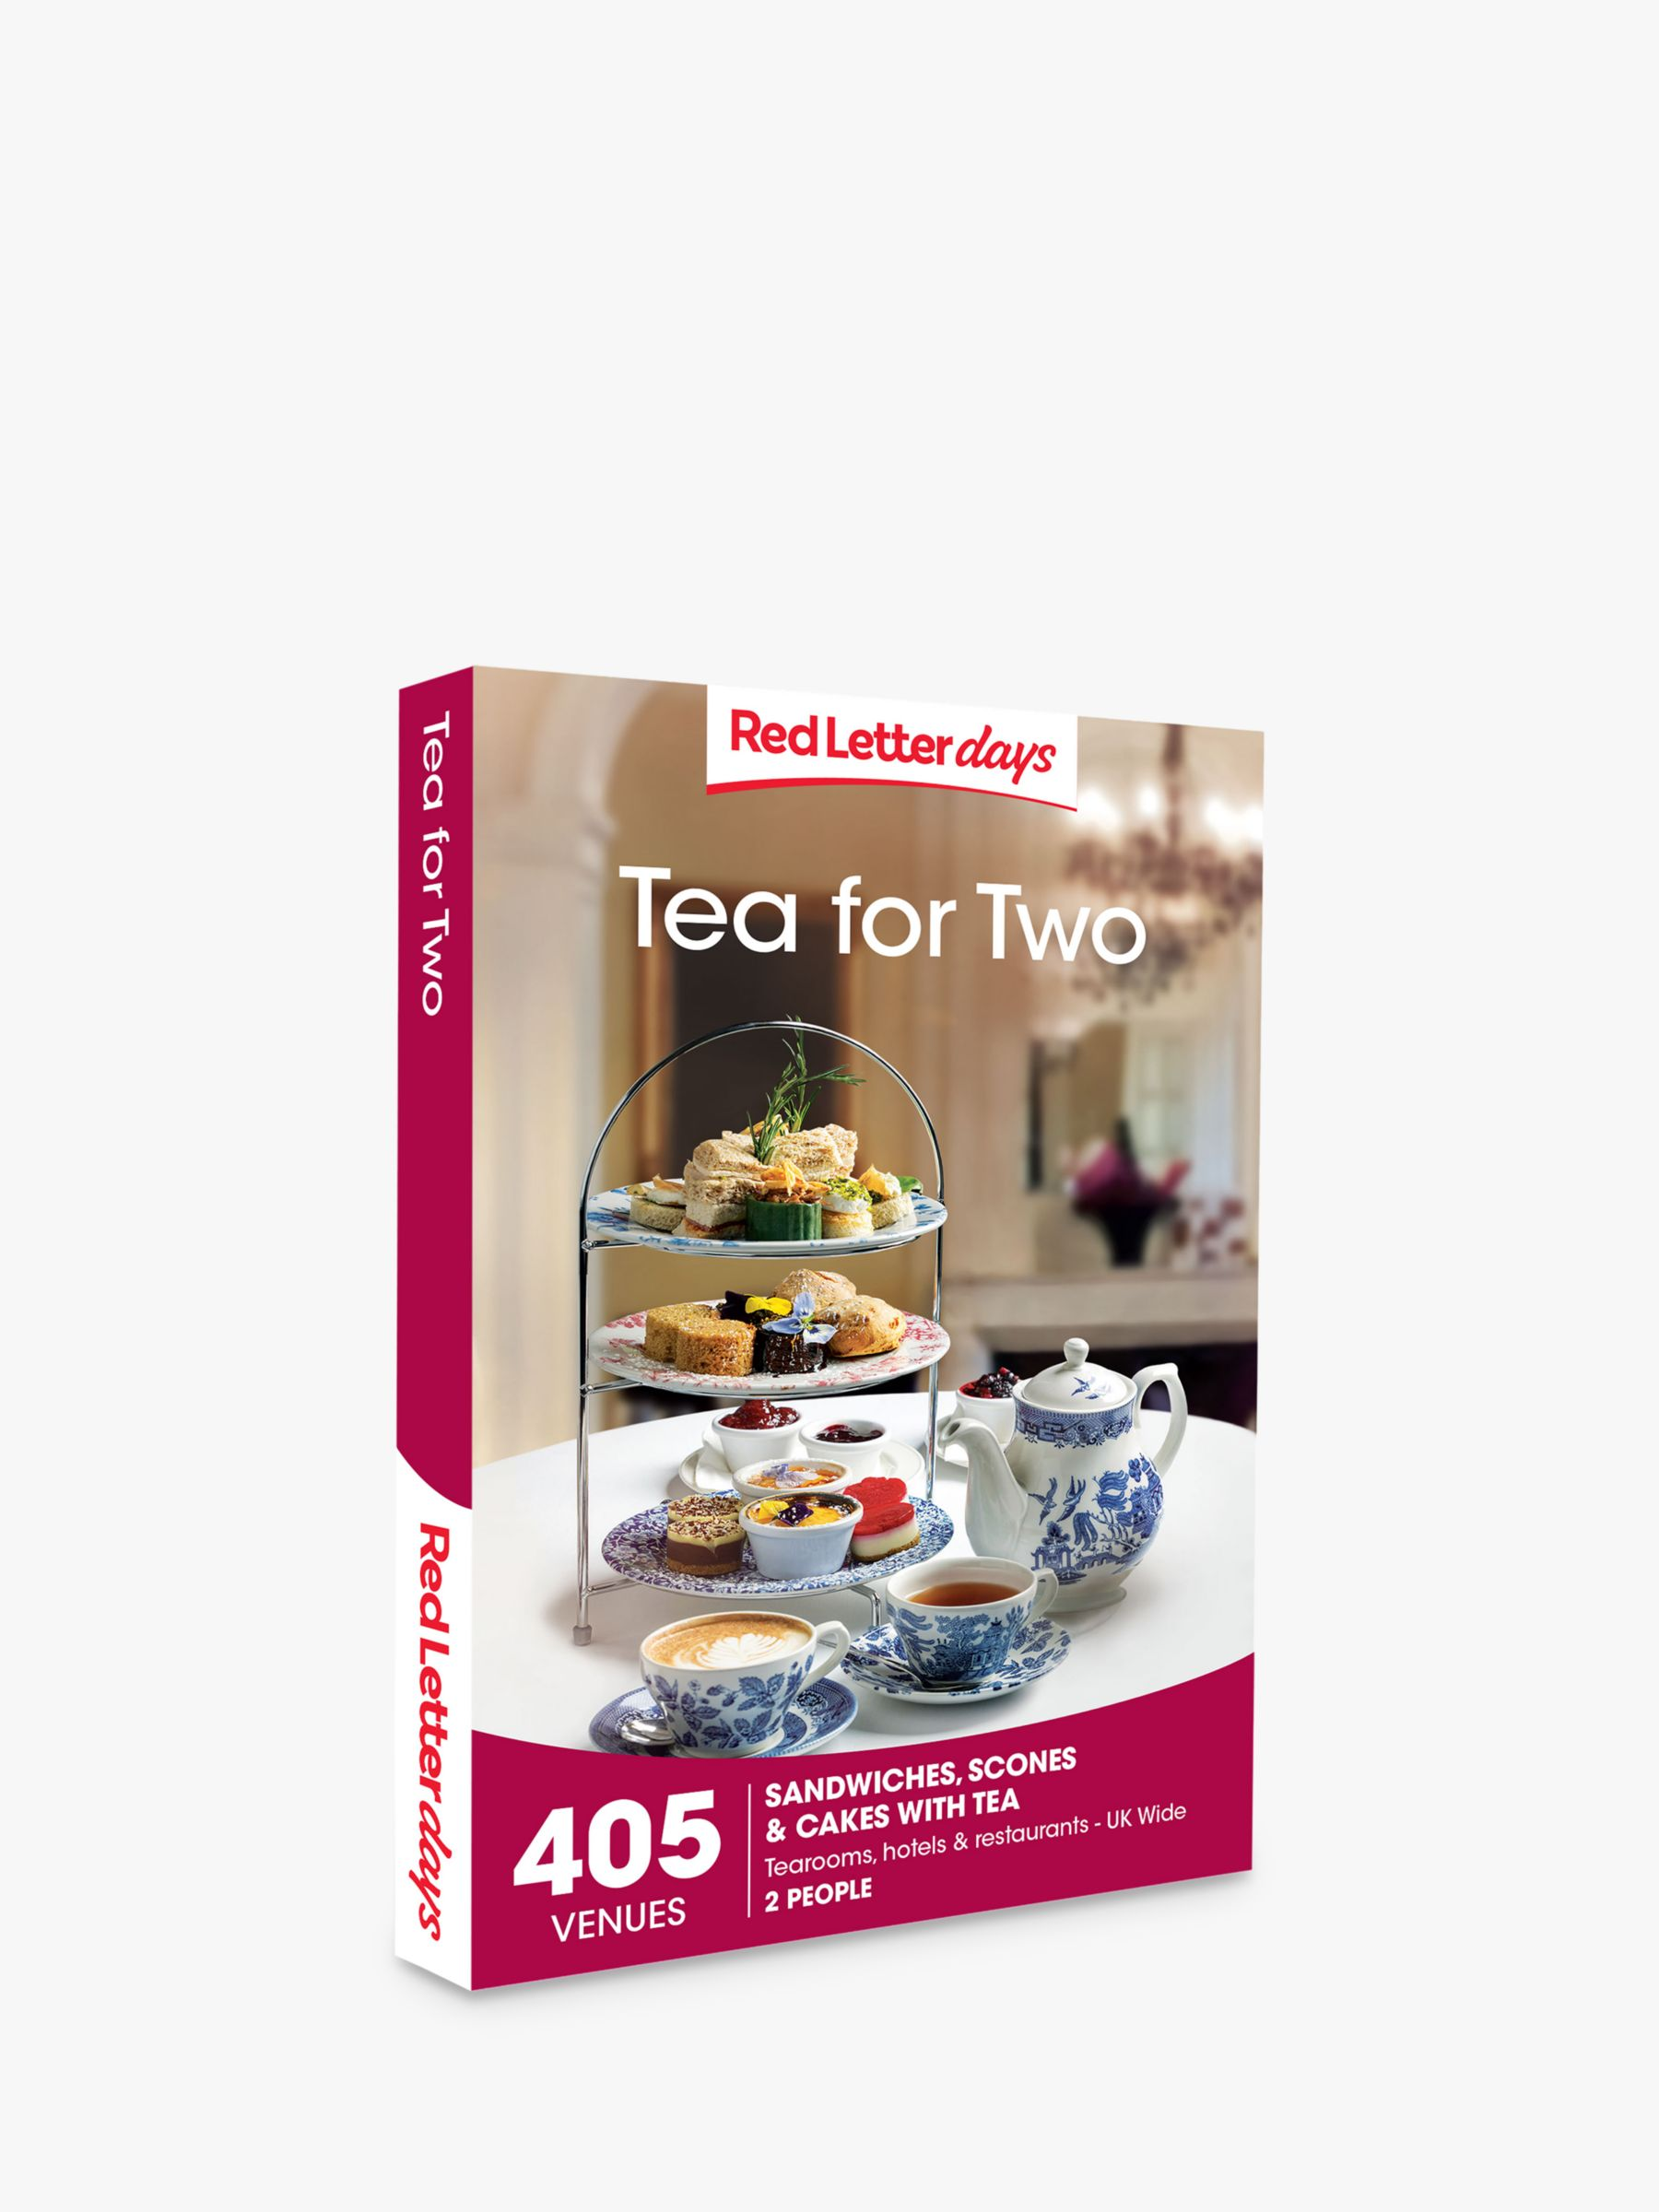 Red Letter Days Red Letter Days Tea for Two Gift Experience